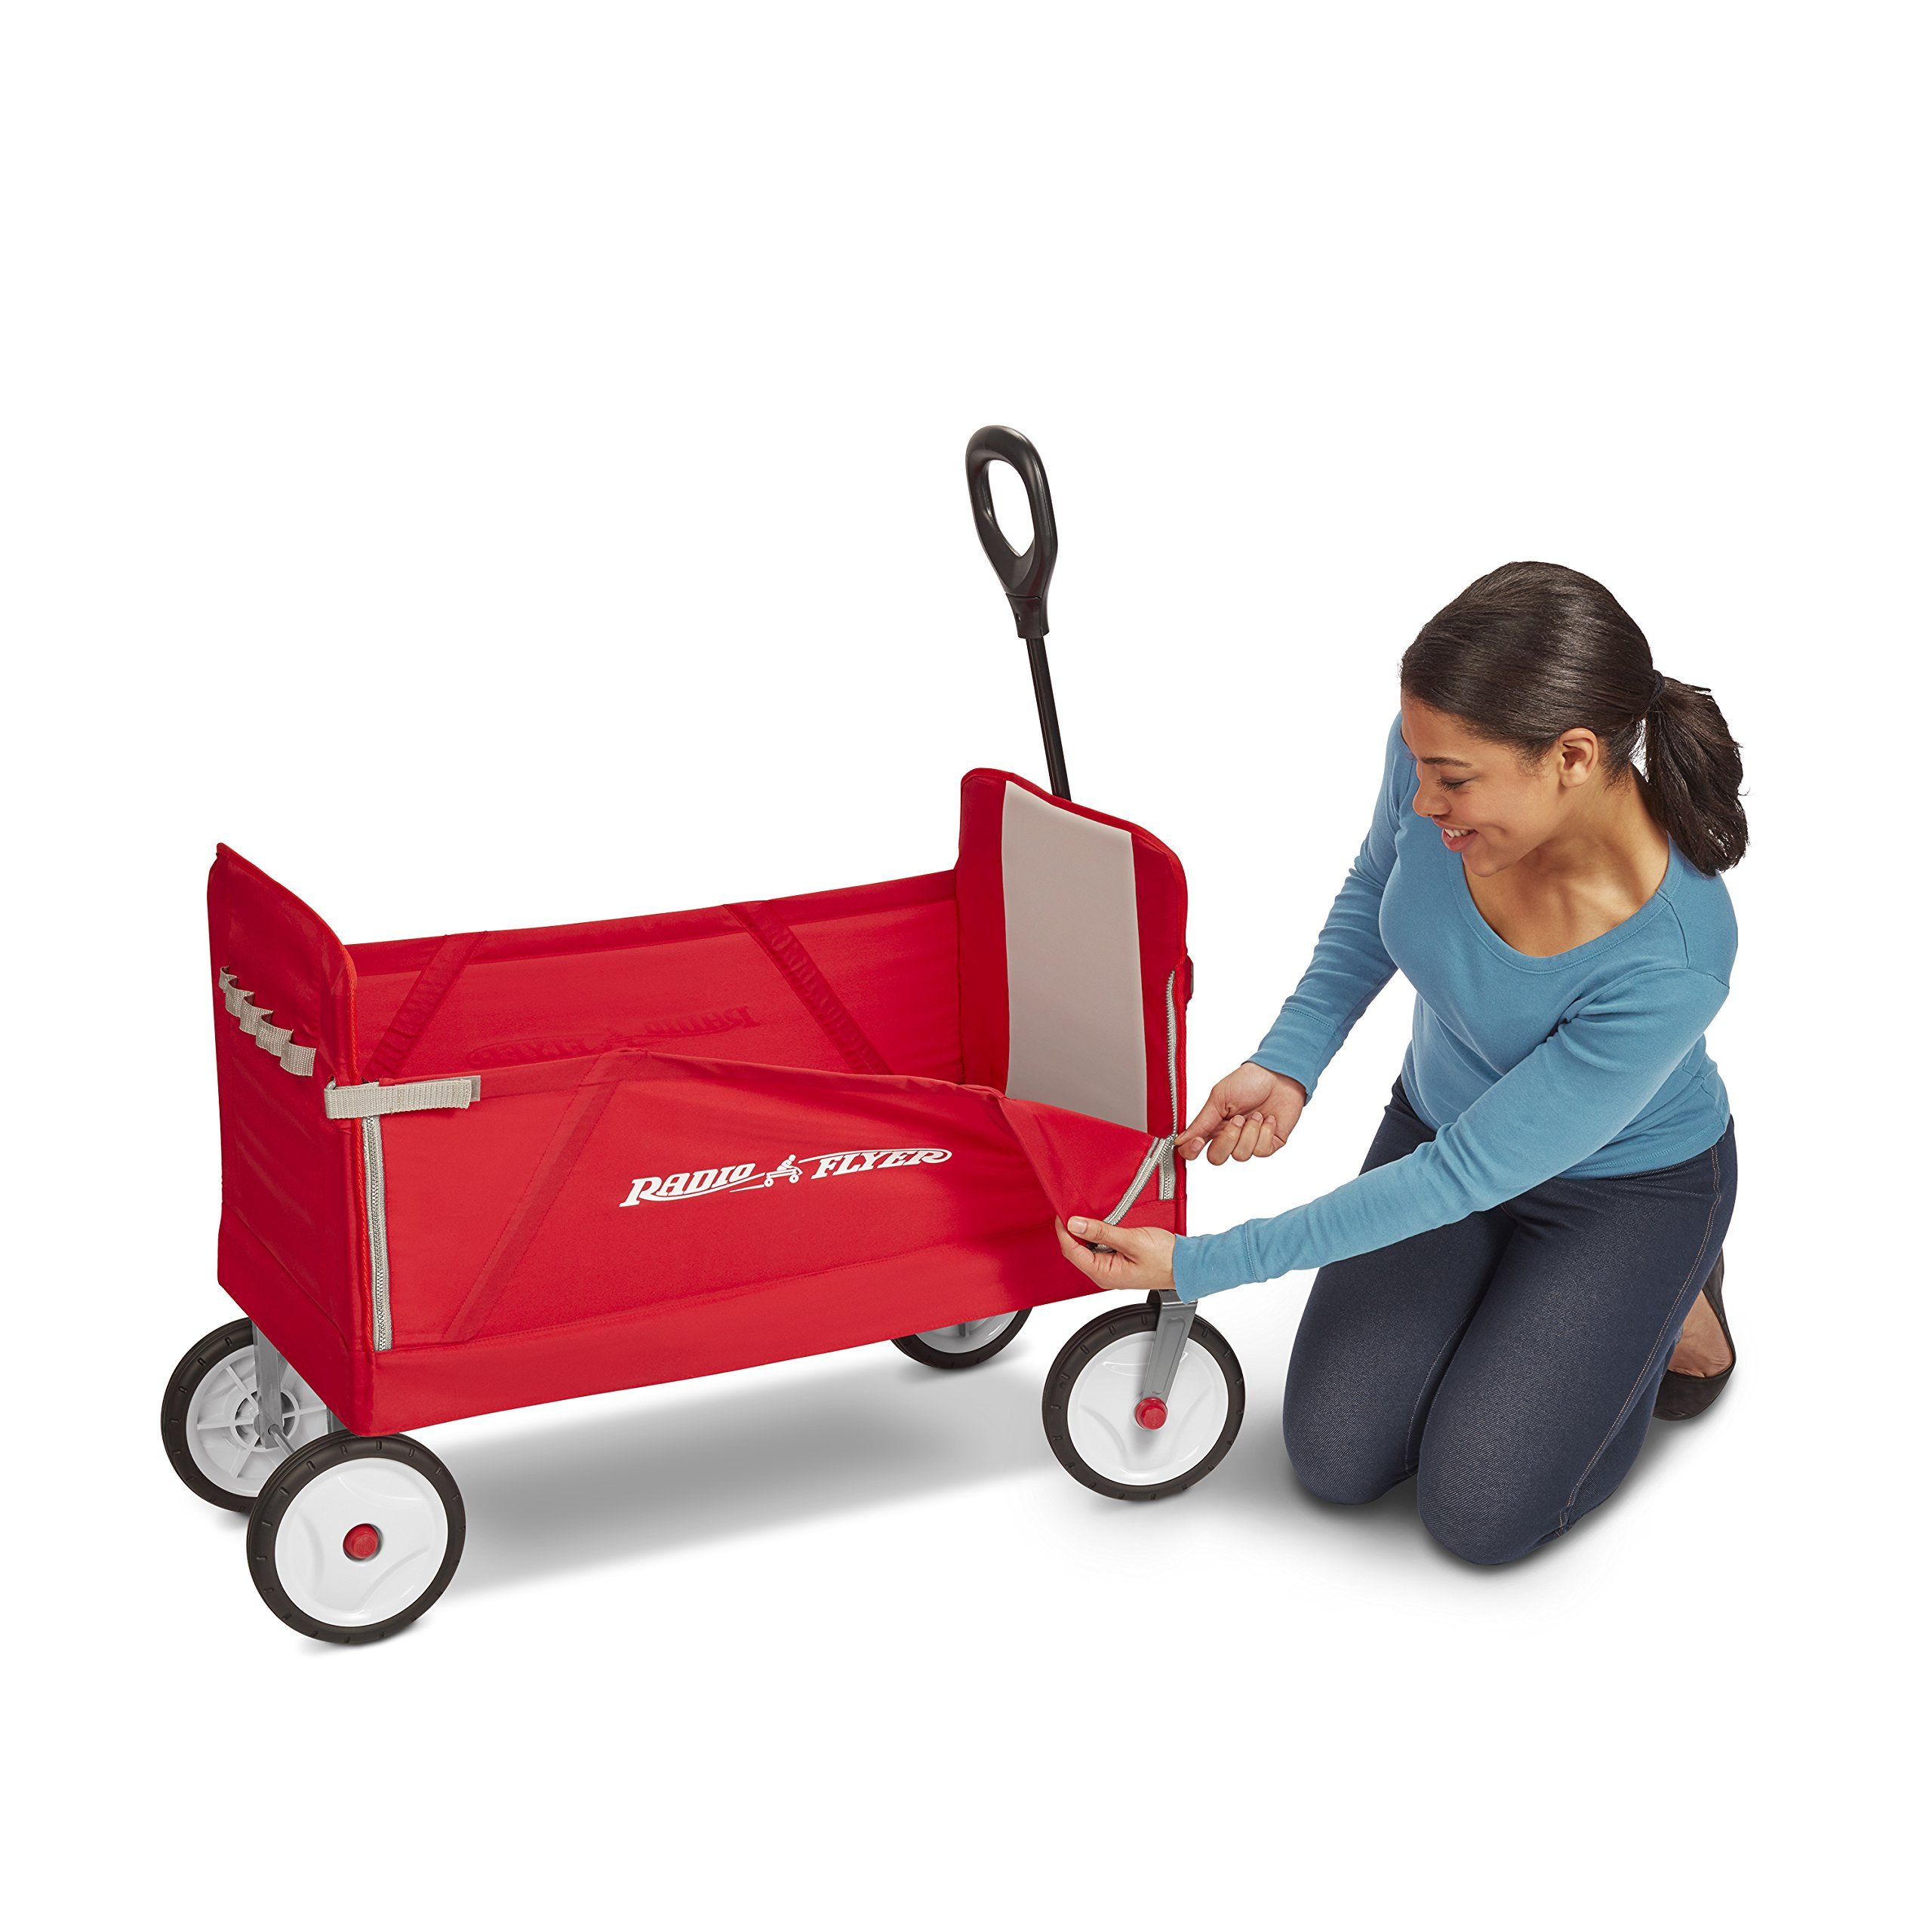 Radio Flyer 3in1 EZ Folding Wagon for kids and cargo